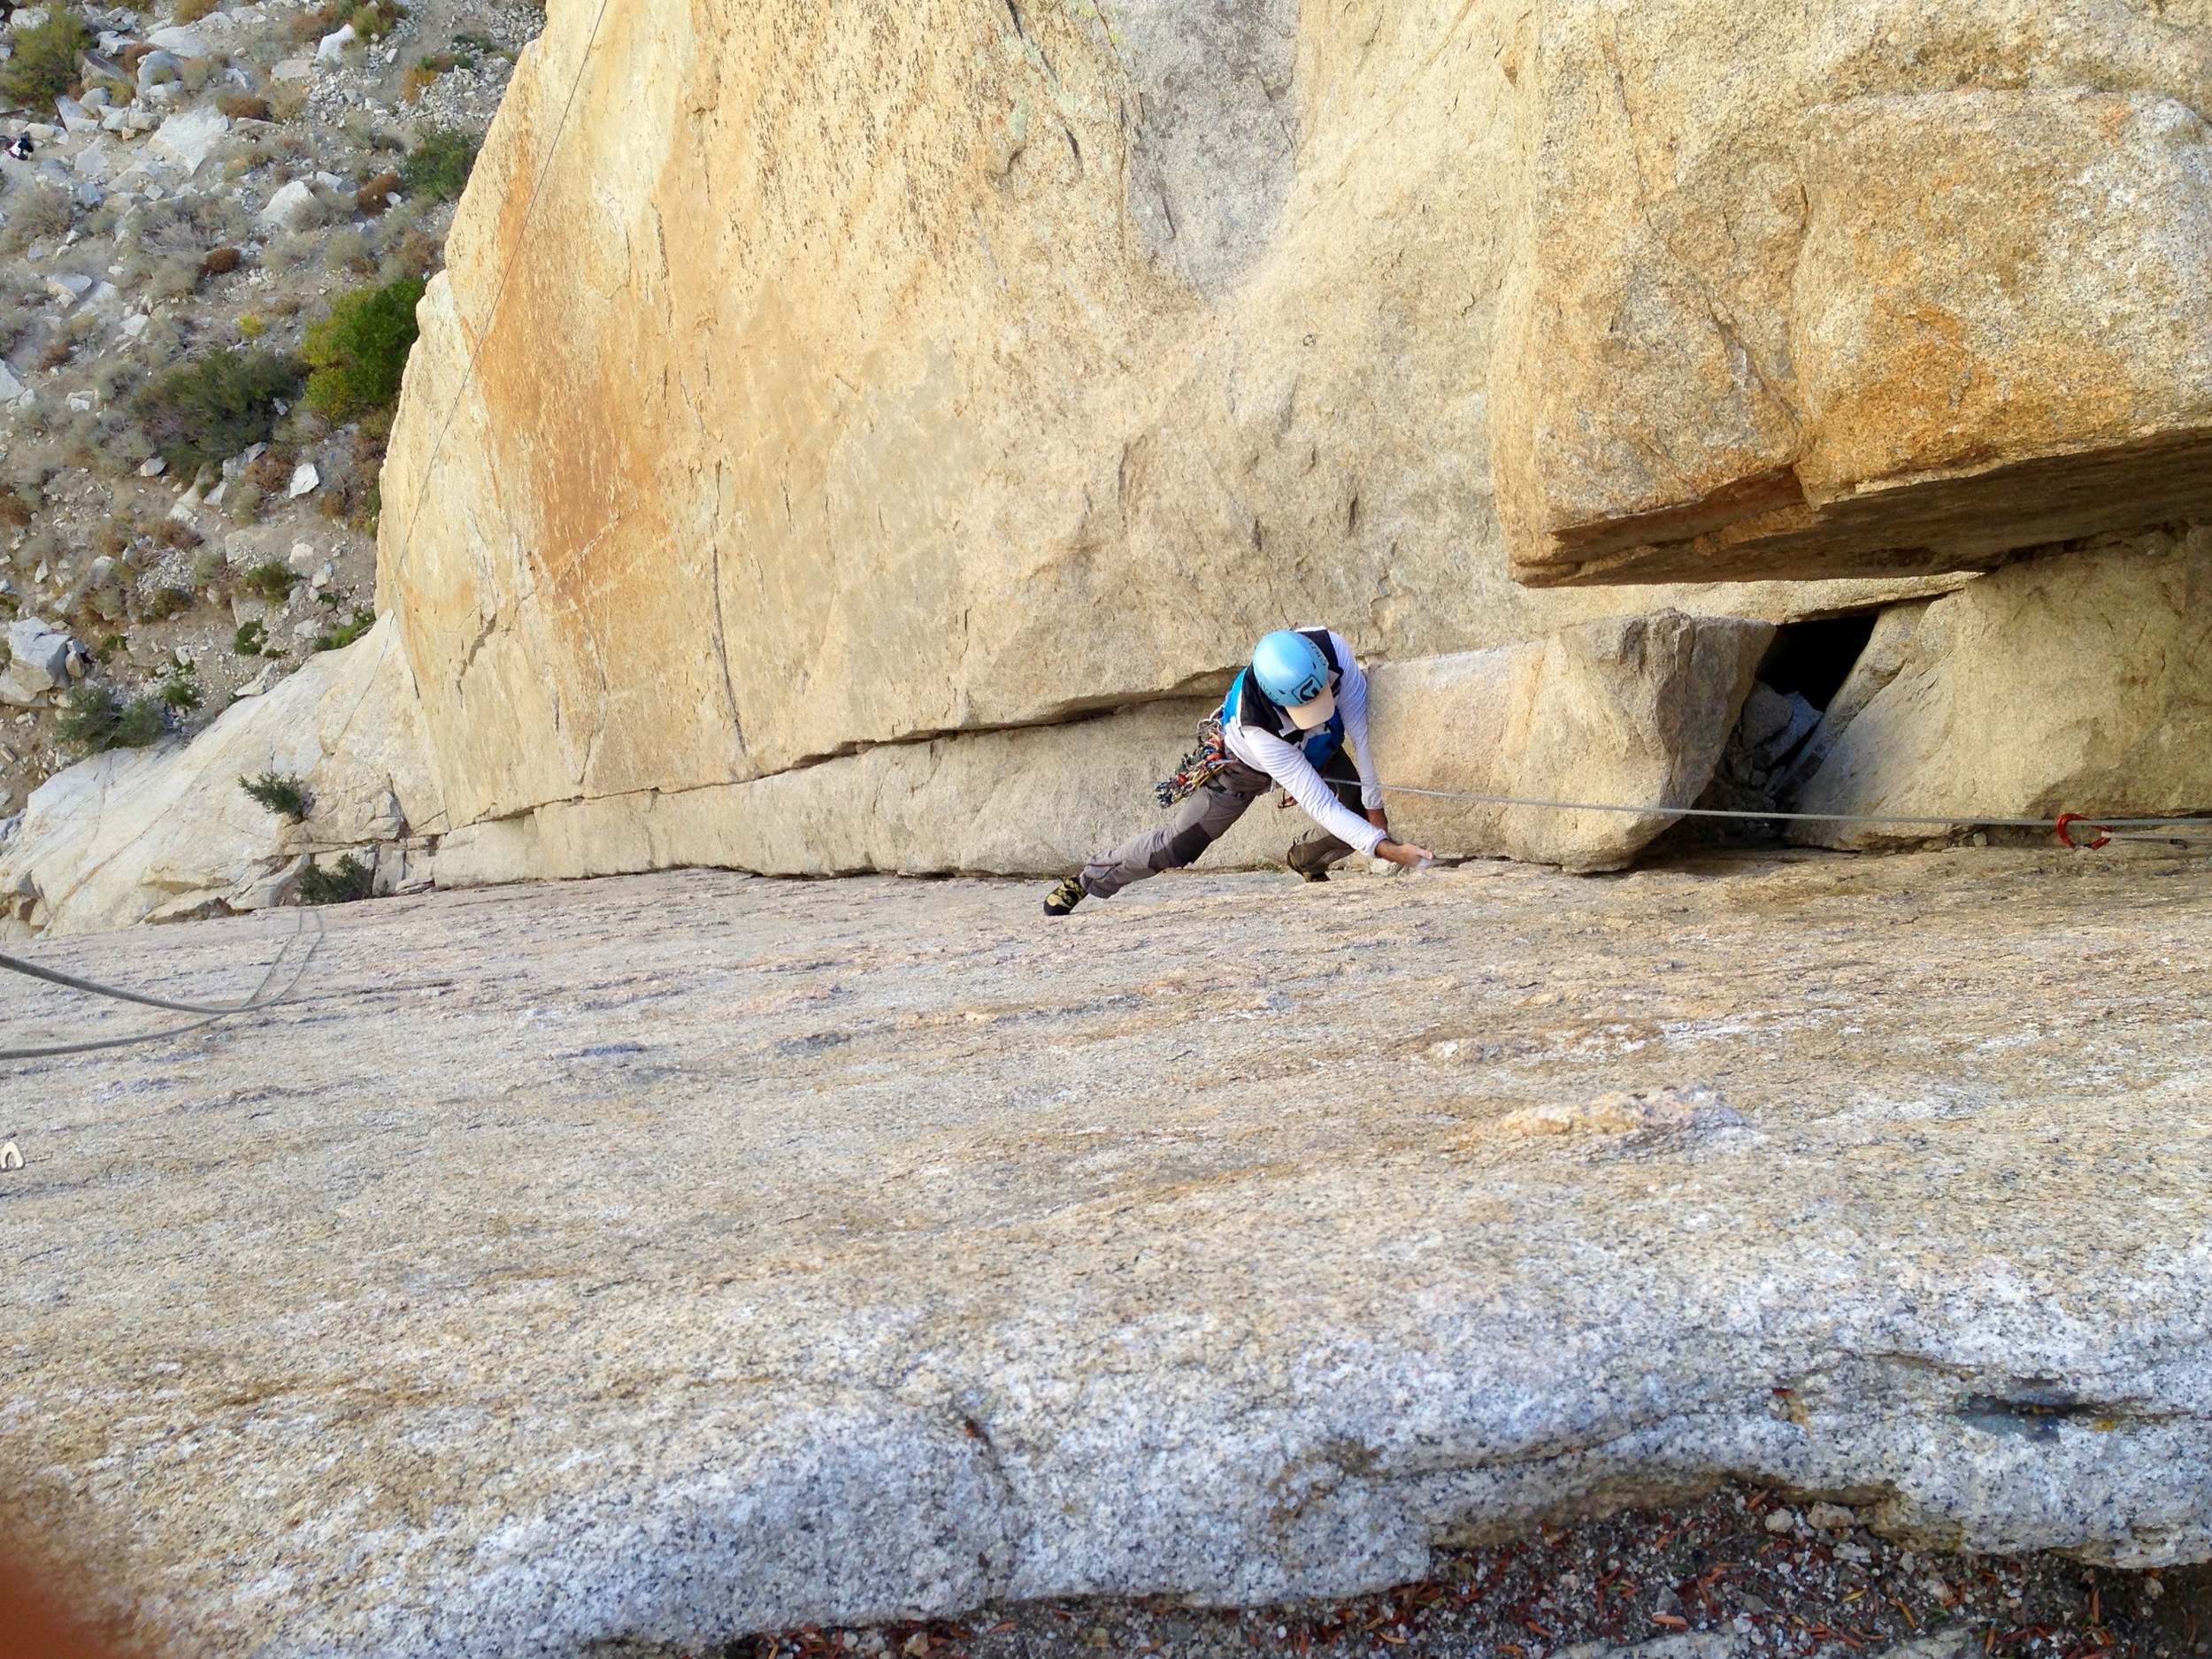 On one of our last days we returned to climb at Pine Creek Canyon. Here, Paul follows on Shiela, a 5.10a that was a full 70m.